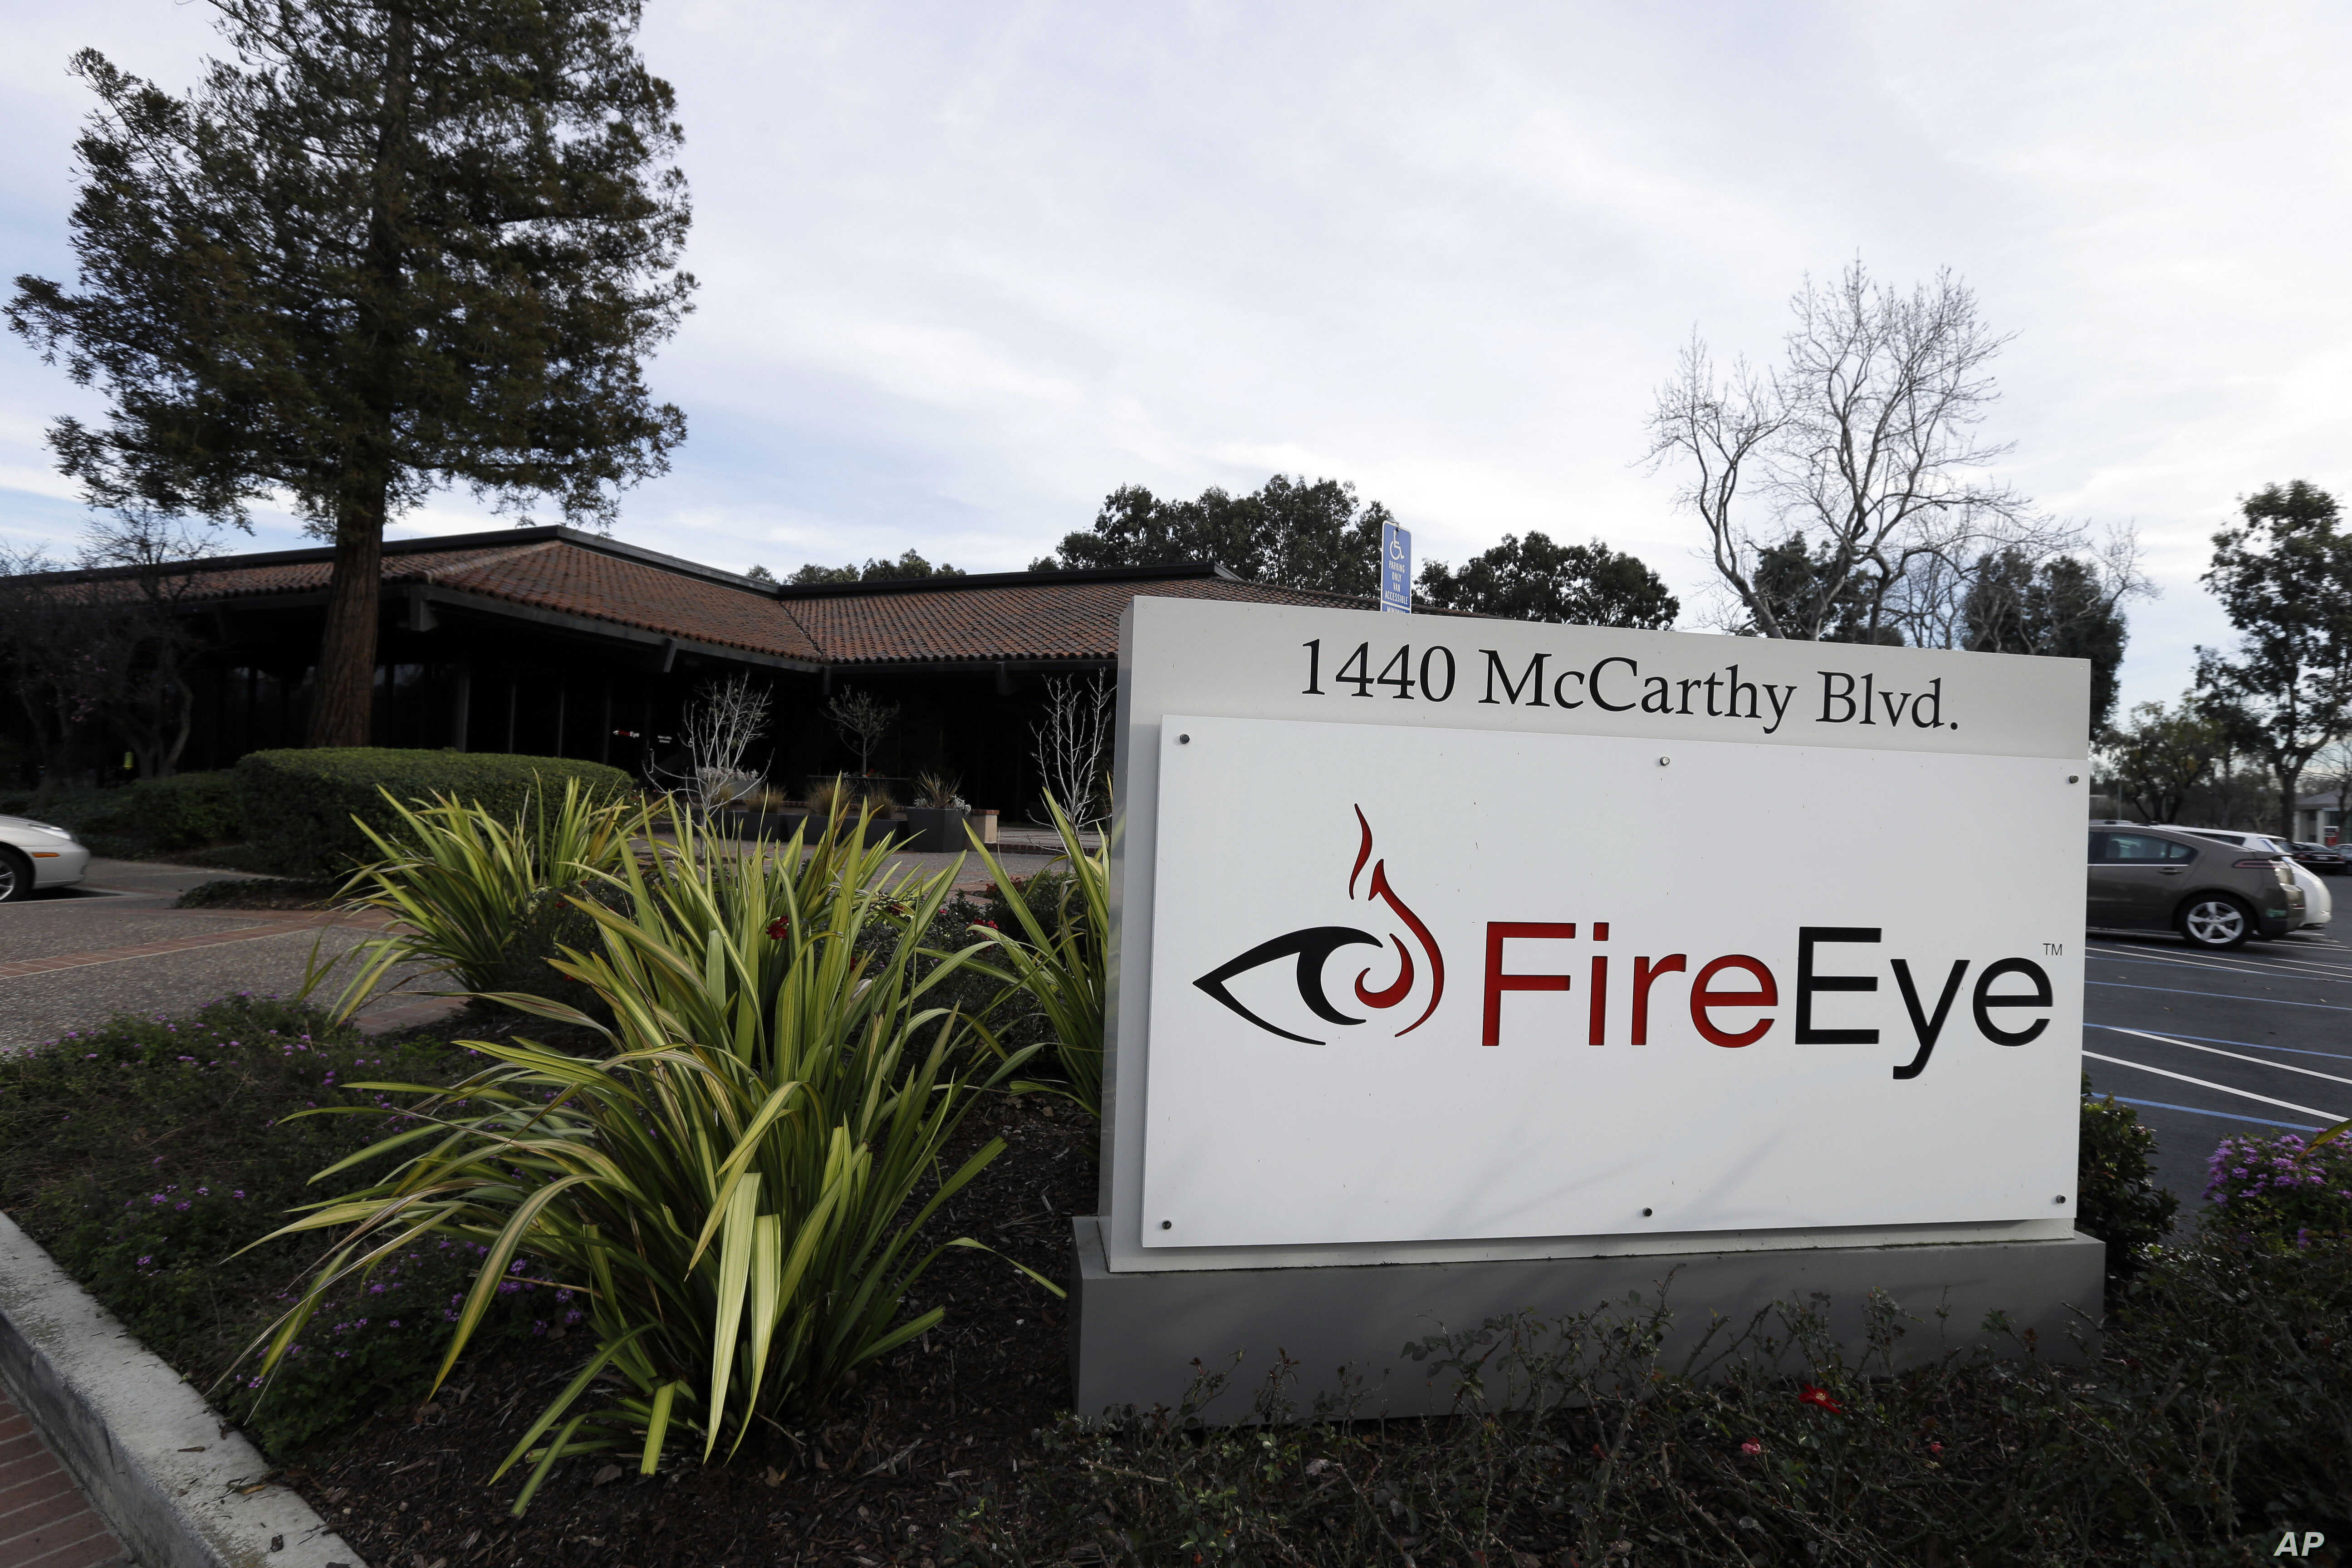 FIRE - FireEye offices are pictured in Milpitas, Calif., Feb. 11, 2015.